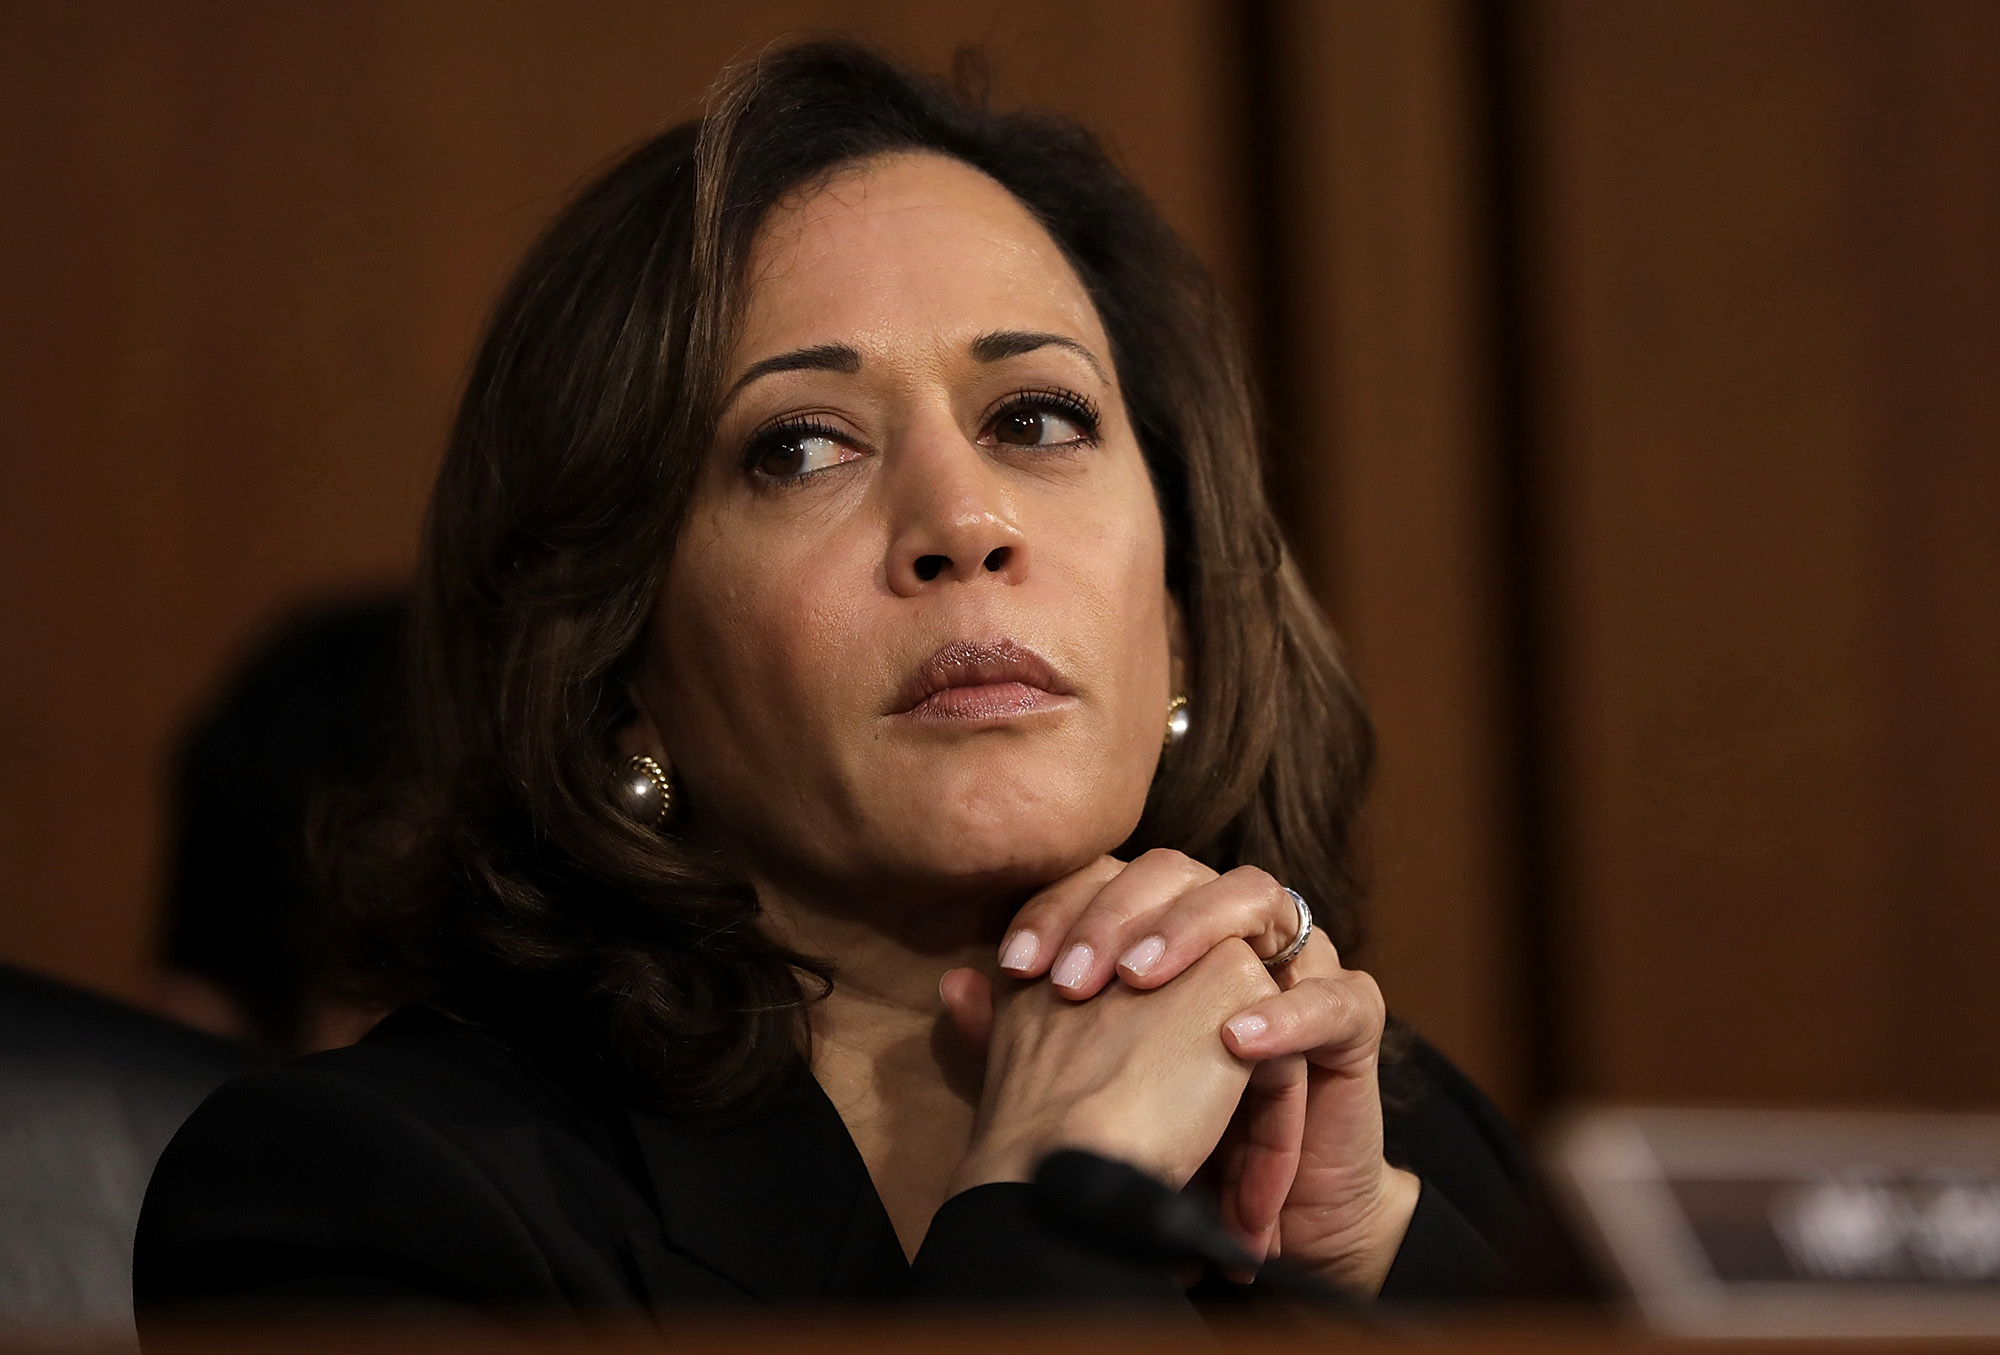 Harris S Fracking Record Scares Big Oil But Attracts The Left Bloomberg